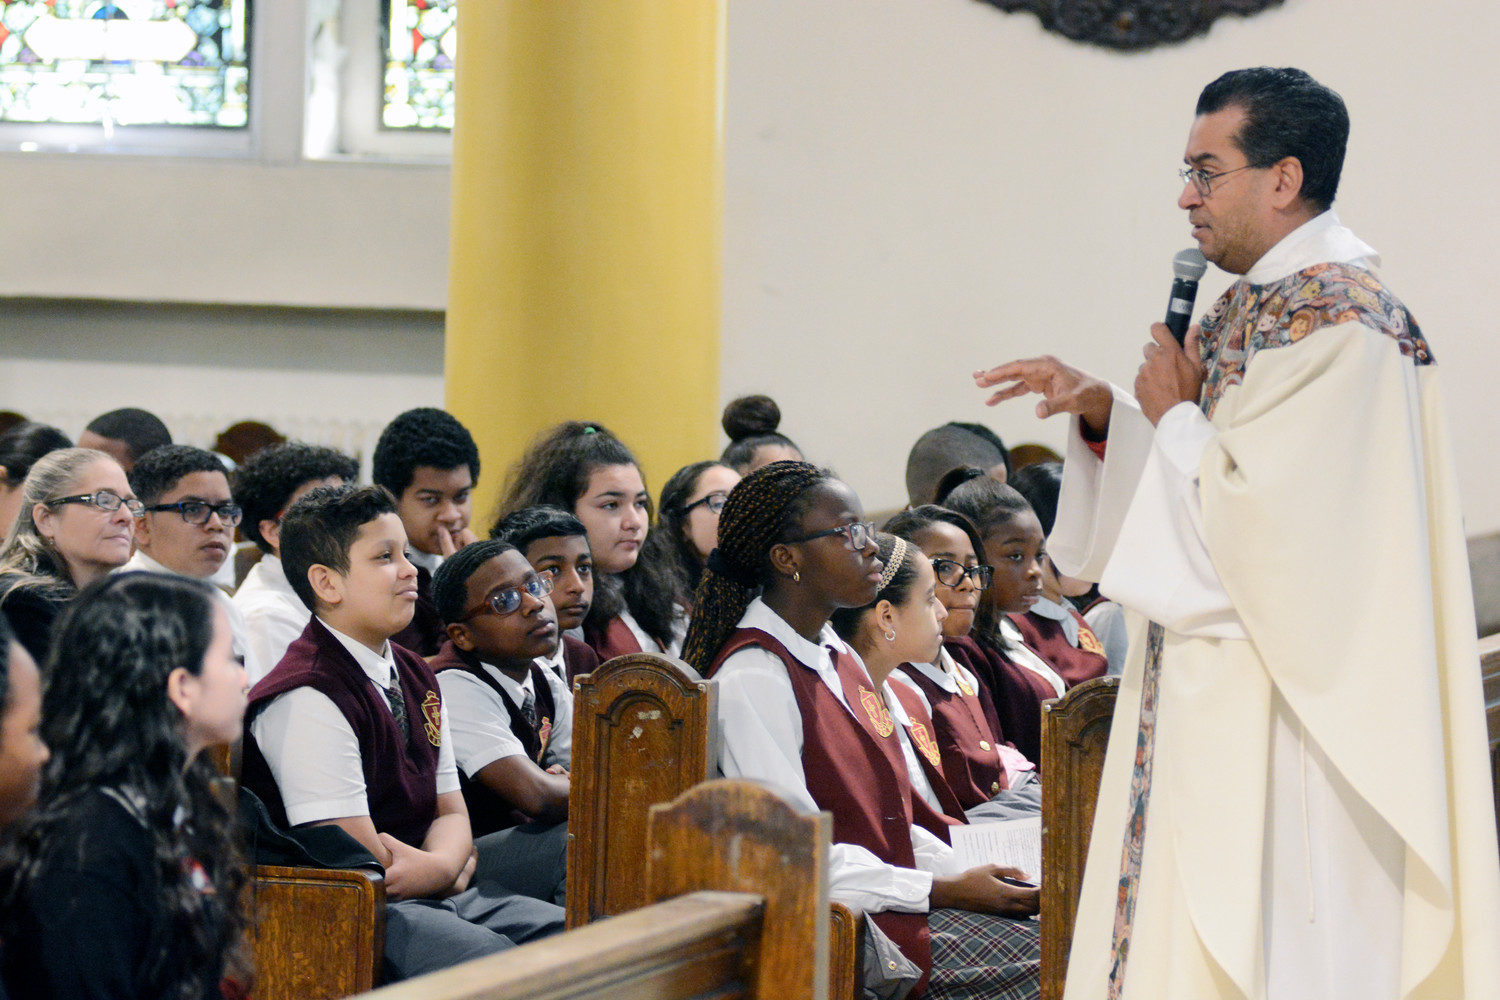 Father Eric Cruz, pastor of St. John Chrysostom parish in the Bronx, speaks to students as he celebrates the Eighth-Grade Mass of Solidarity for Hurricane Victims at St. John Chrysostom Church Jan. 24. About 450 eighth-grade students from 15 Catholic schools in the Northwest/South Bronx Region of the archdiocese attended the Mass.